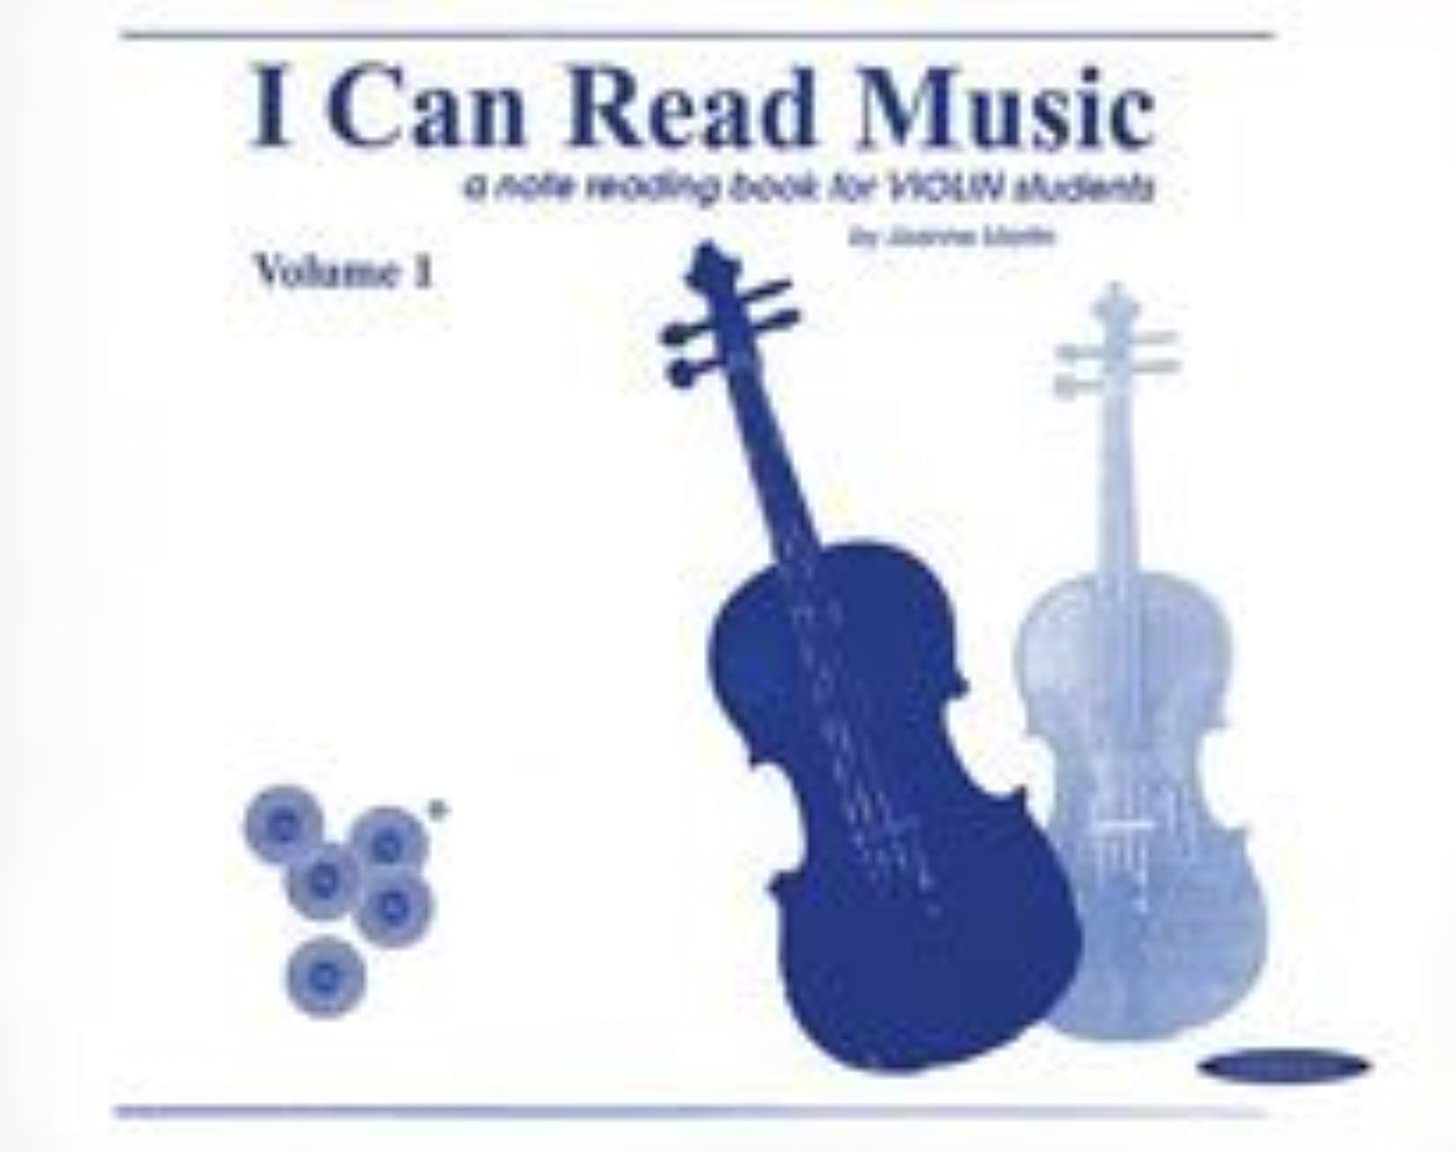 I Can Read Music, Volume 1 - Violin